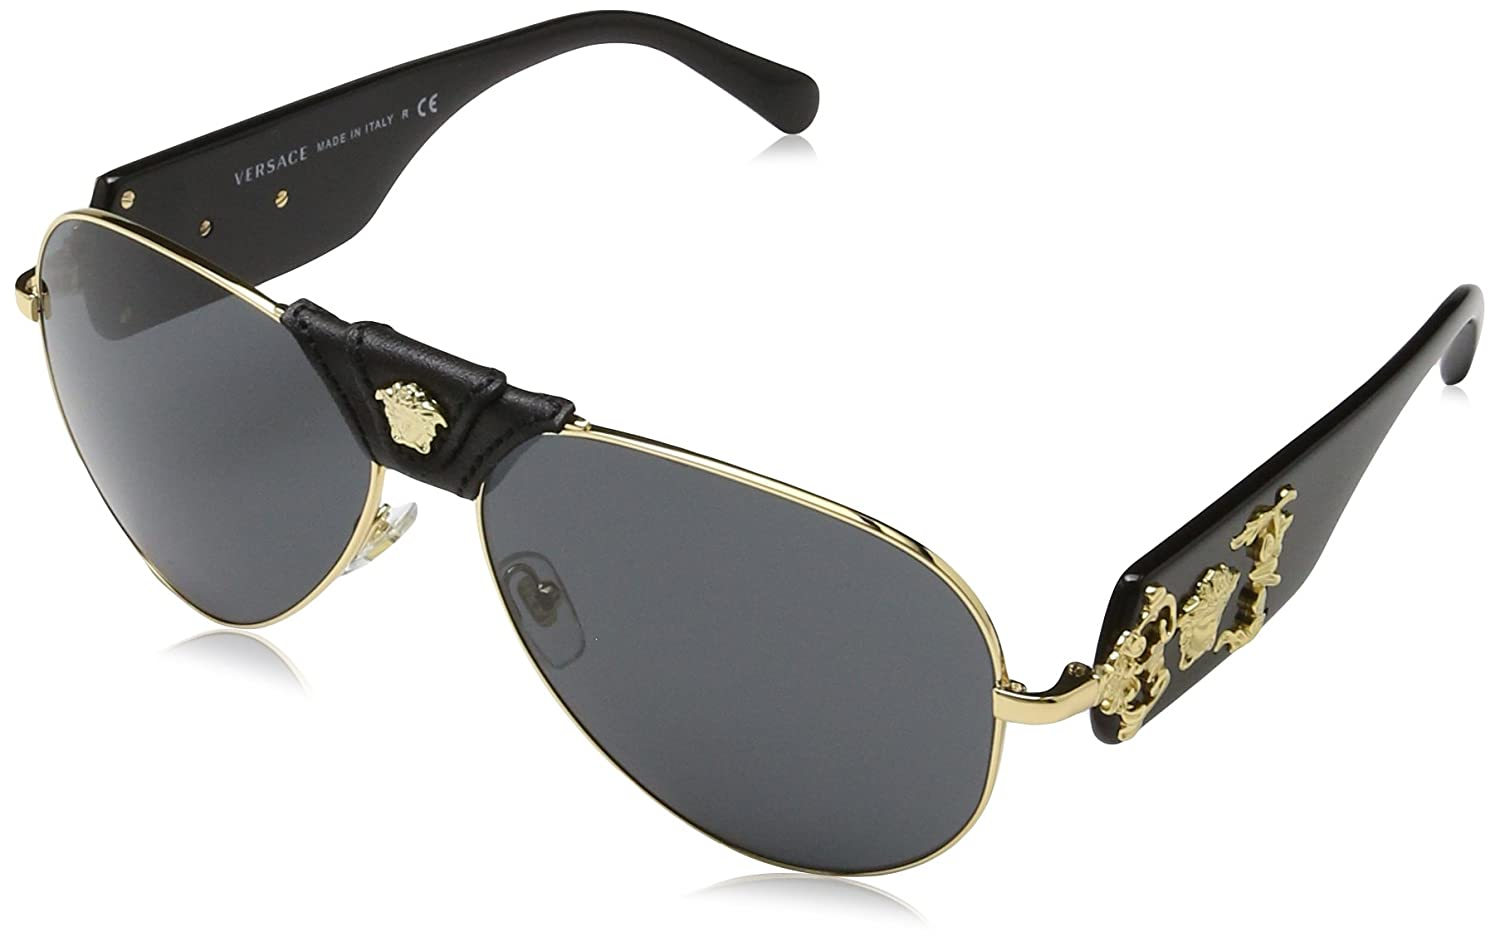 e5c211aa3d Amazon.com  Versace VE2150Q - 100287 Gold Black Aviator Sunglasses 62mm   Versace  Shoes